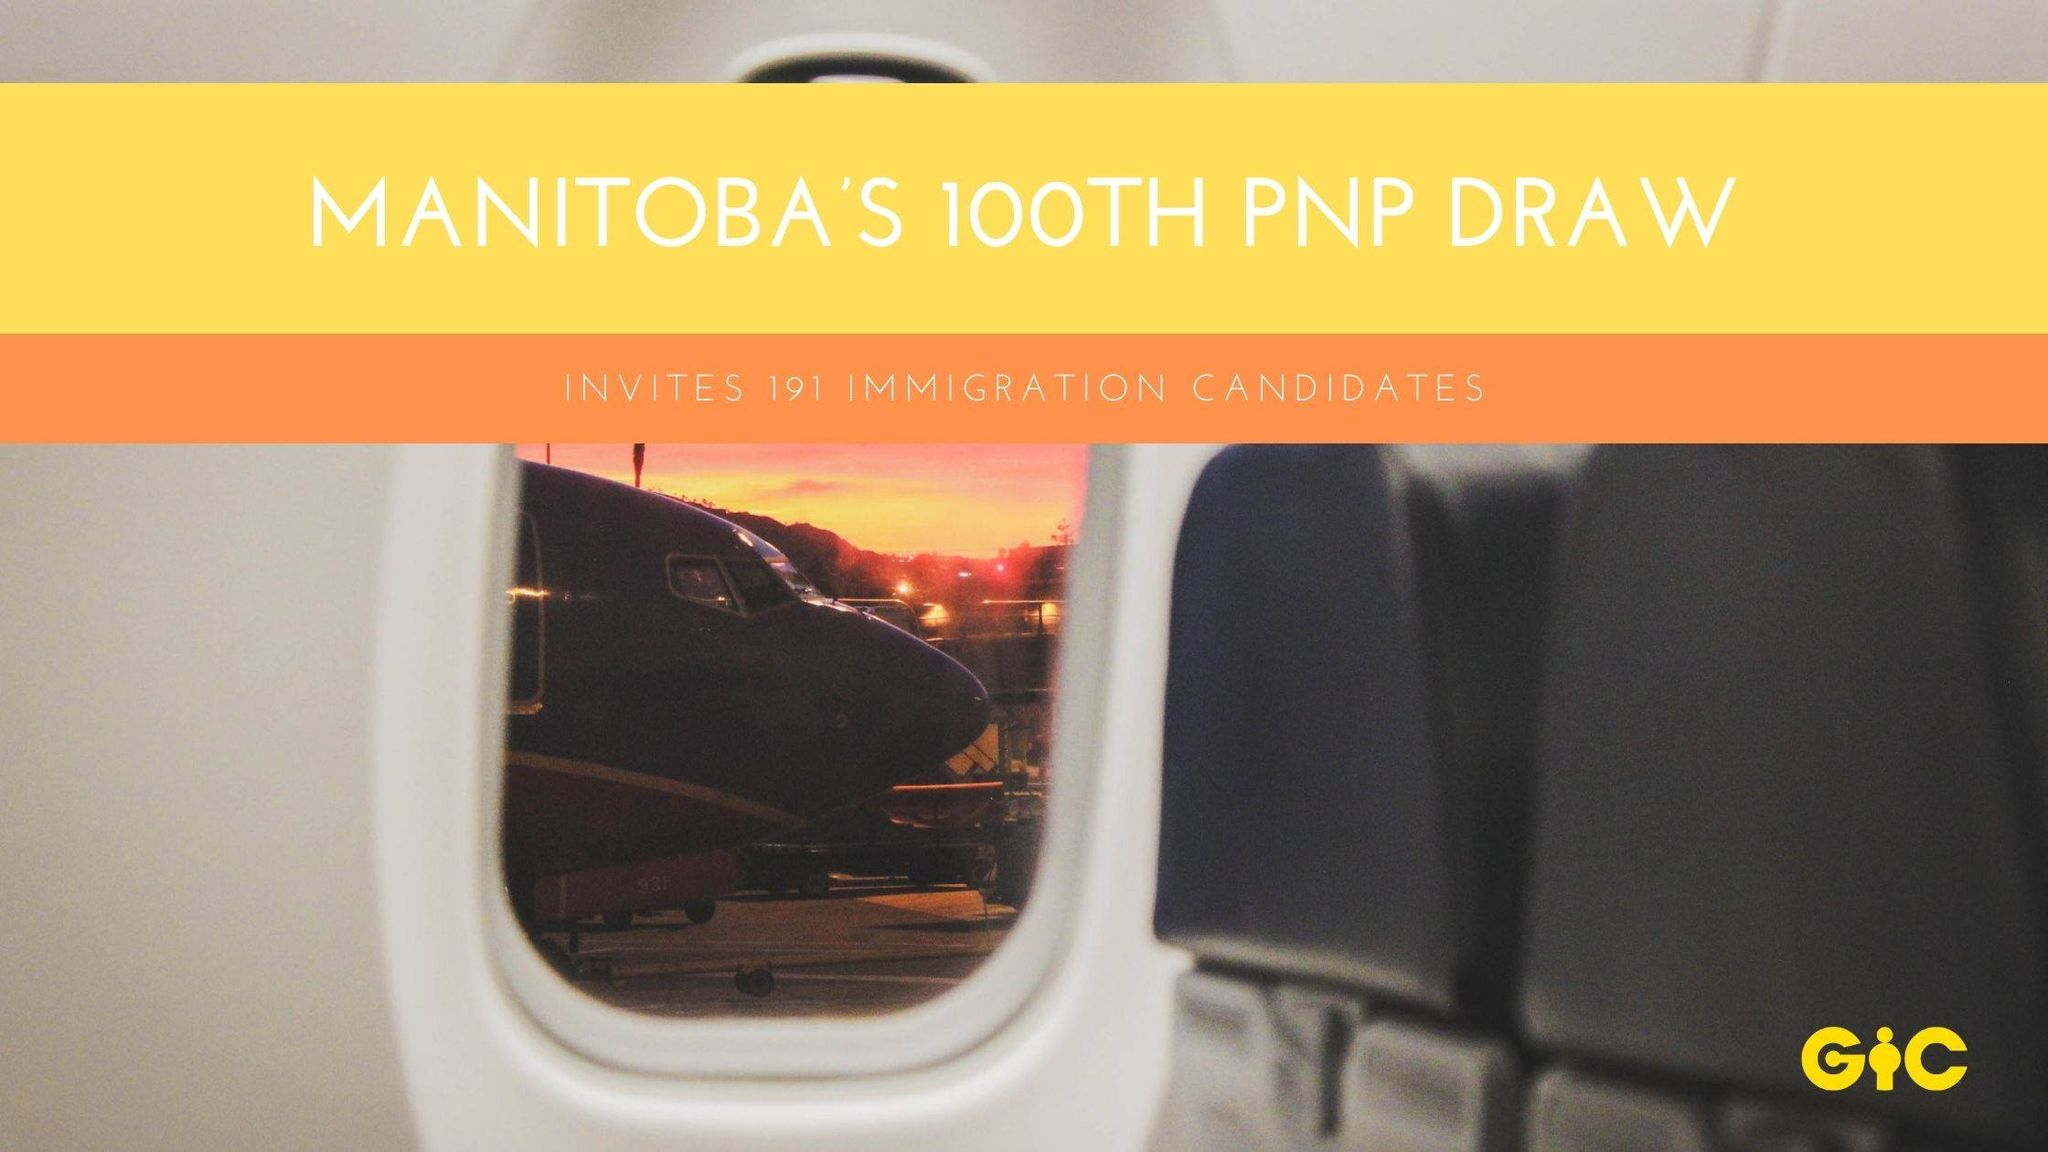 Manitoba's 100th PNP draw invites 191 immigration candidates